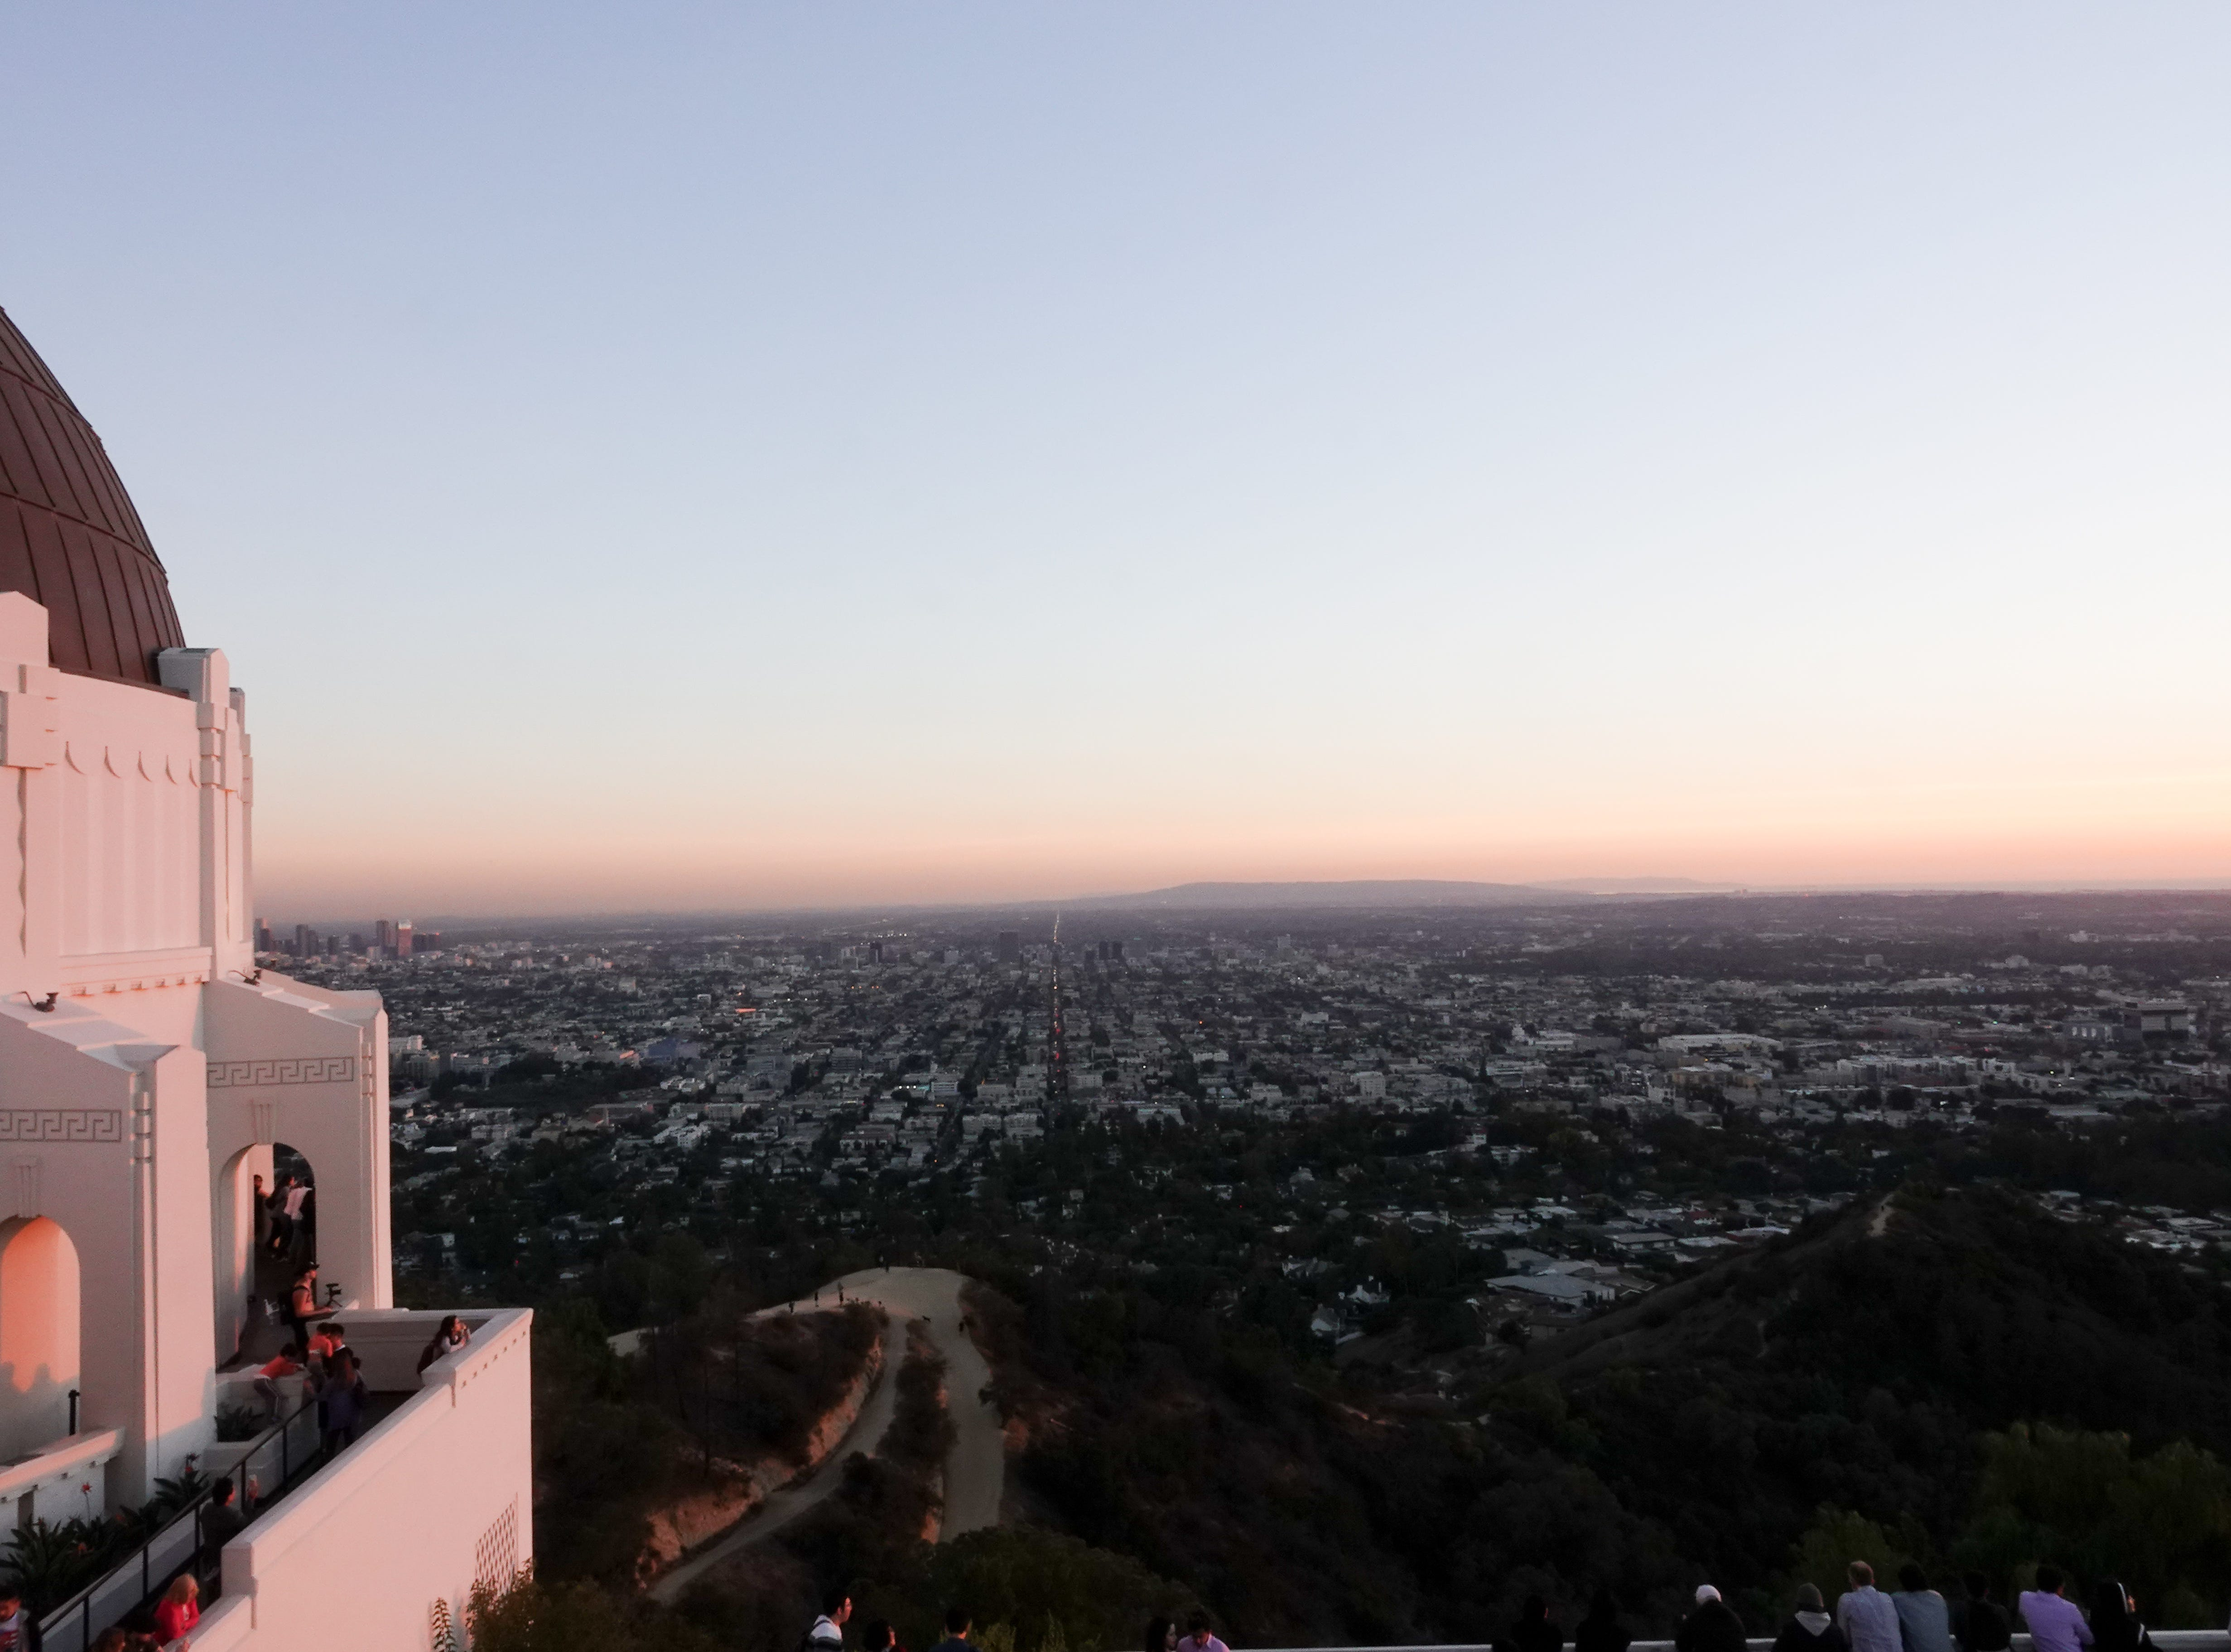 From the side of the Observatory